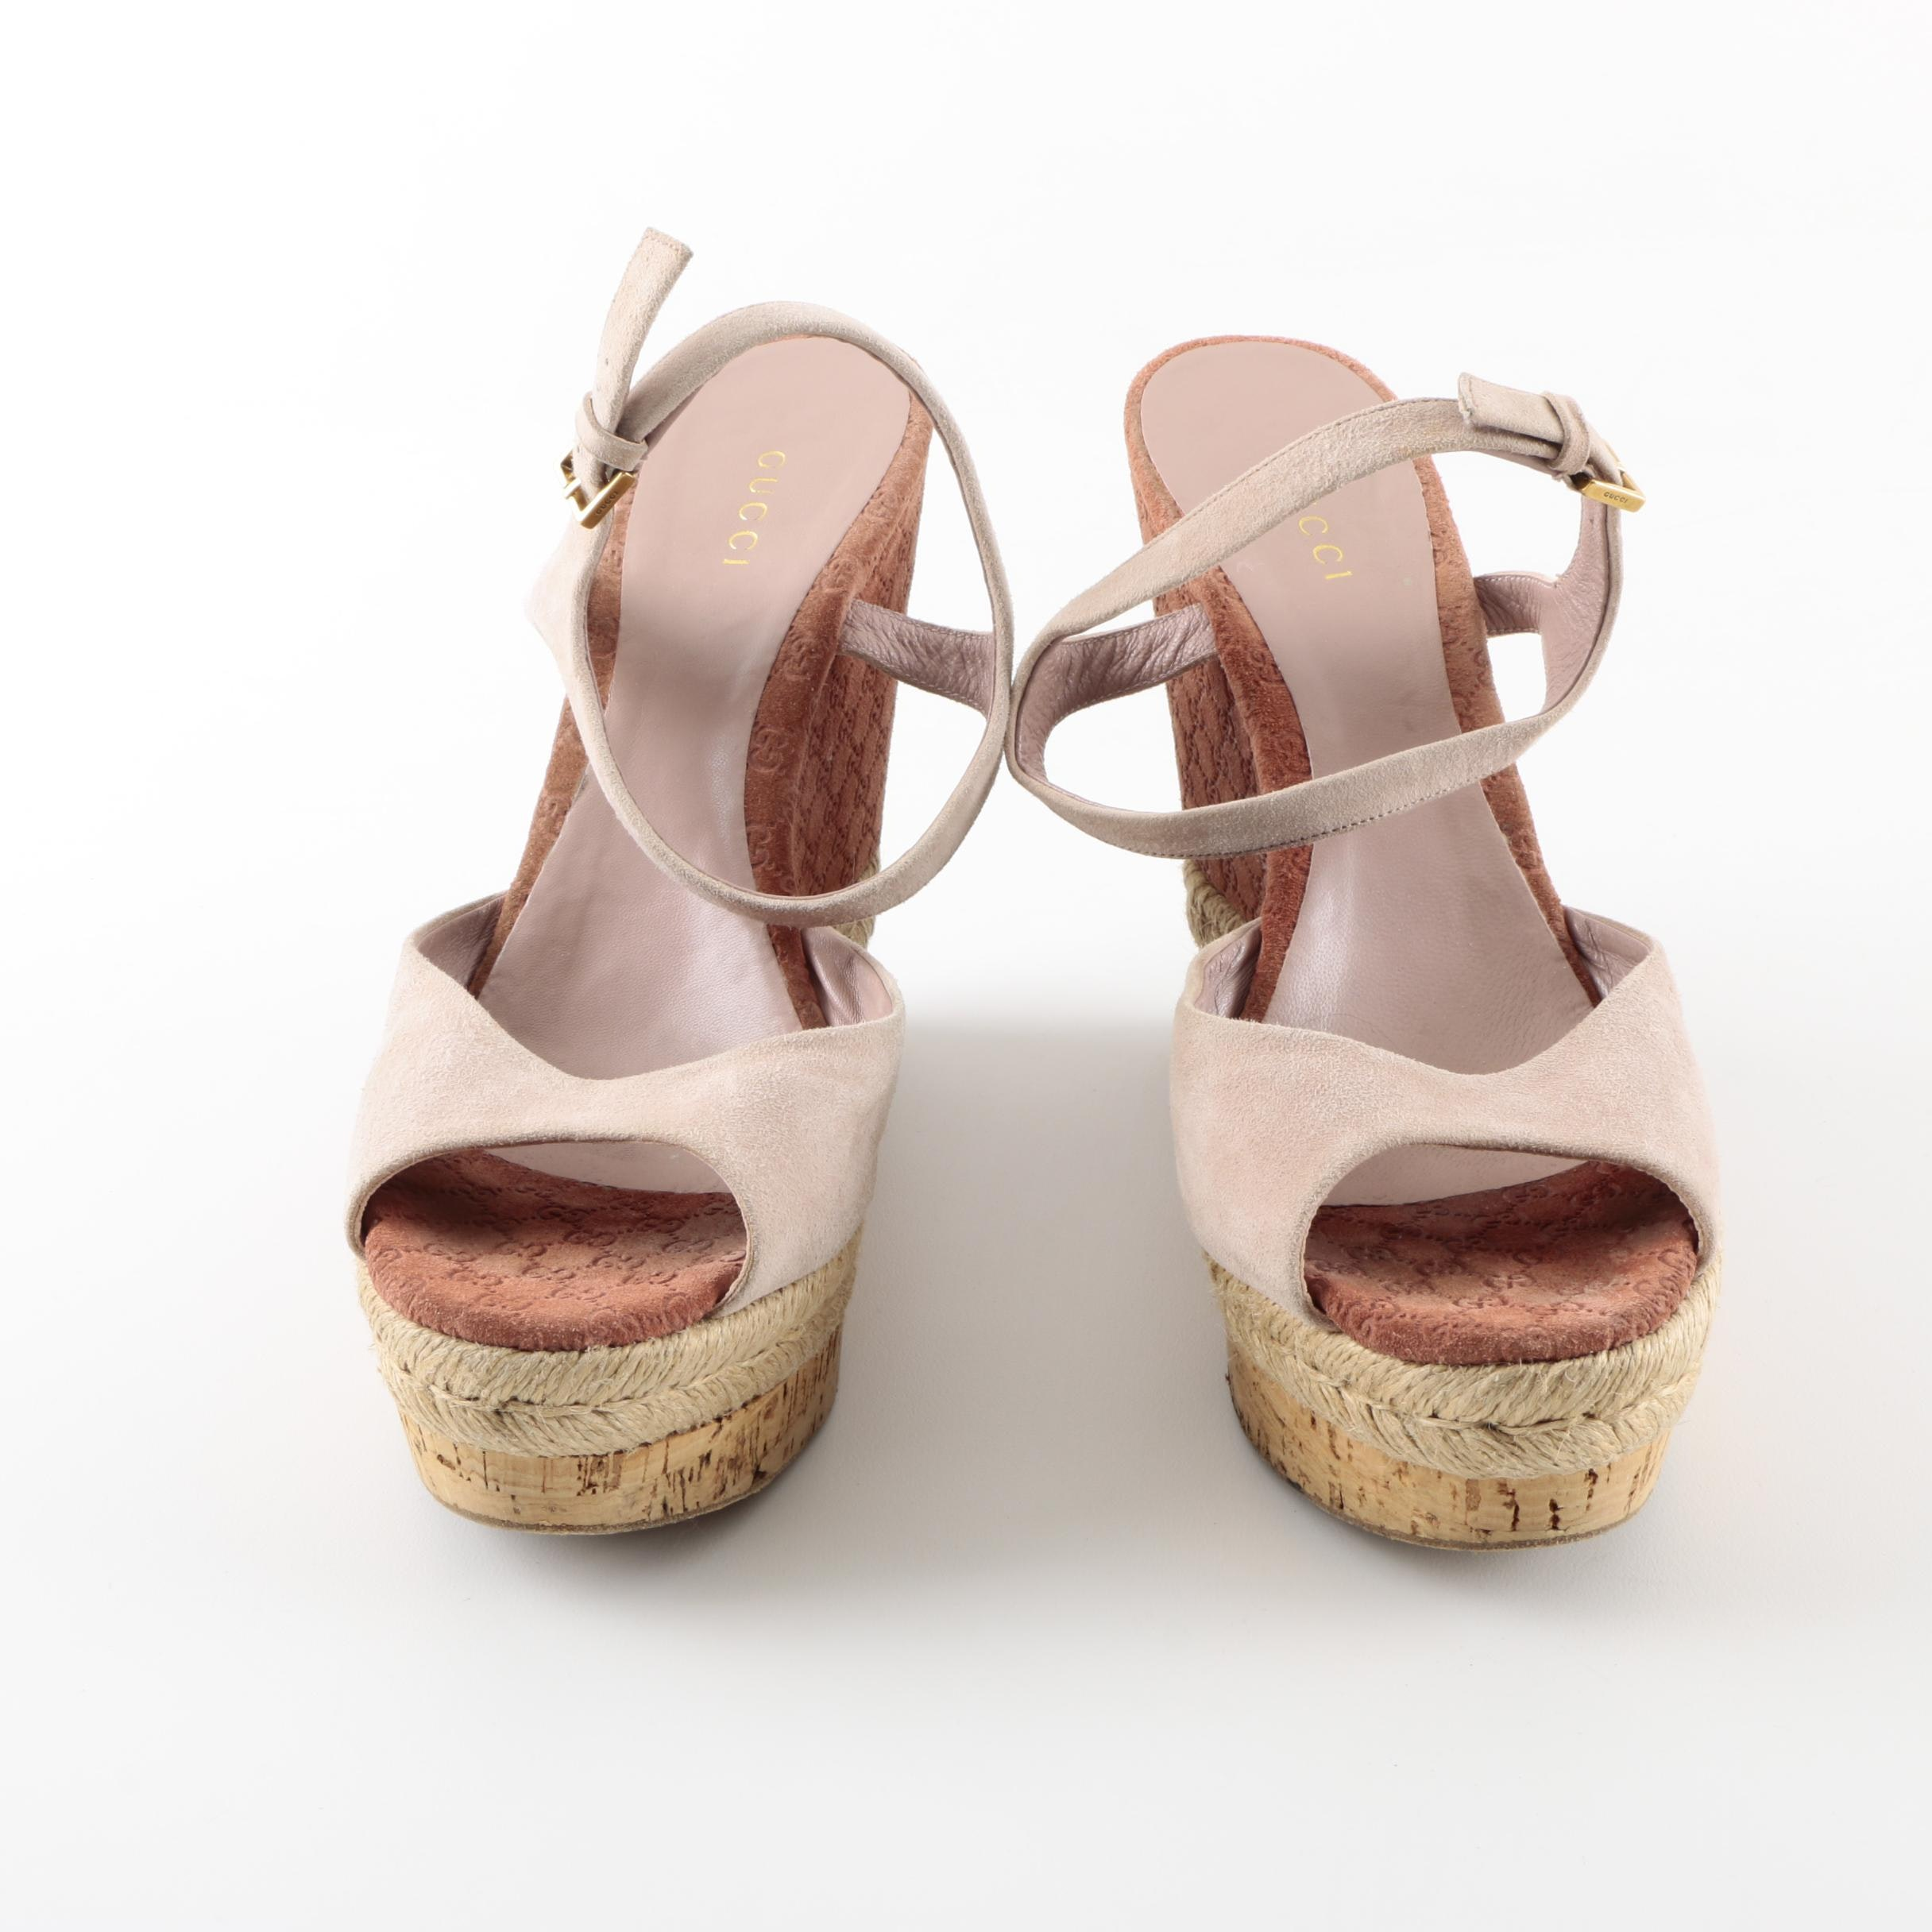 Women's Gucci Suede Leather and Jute Wedges